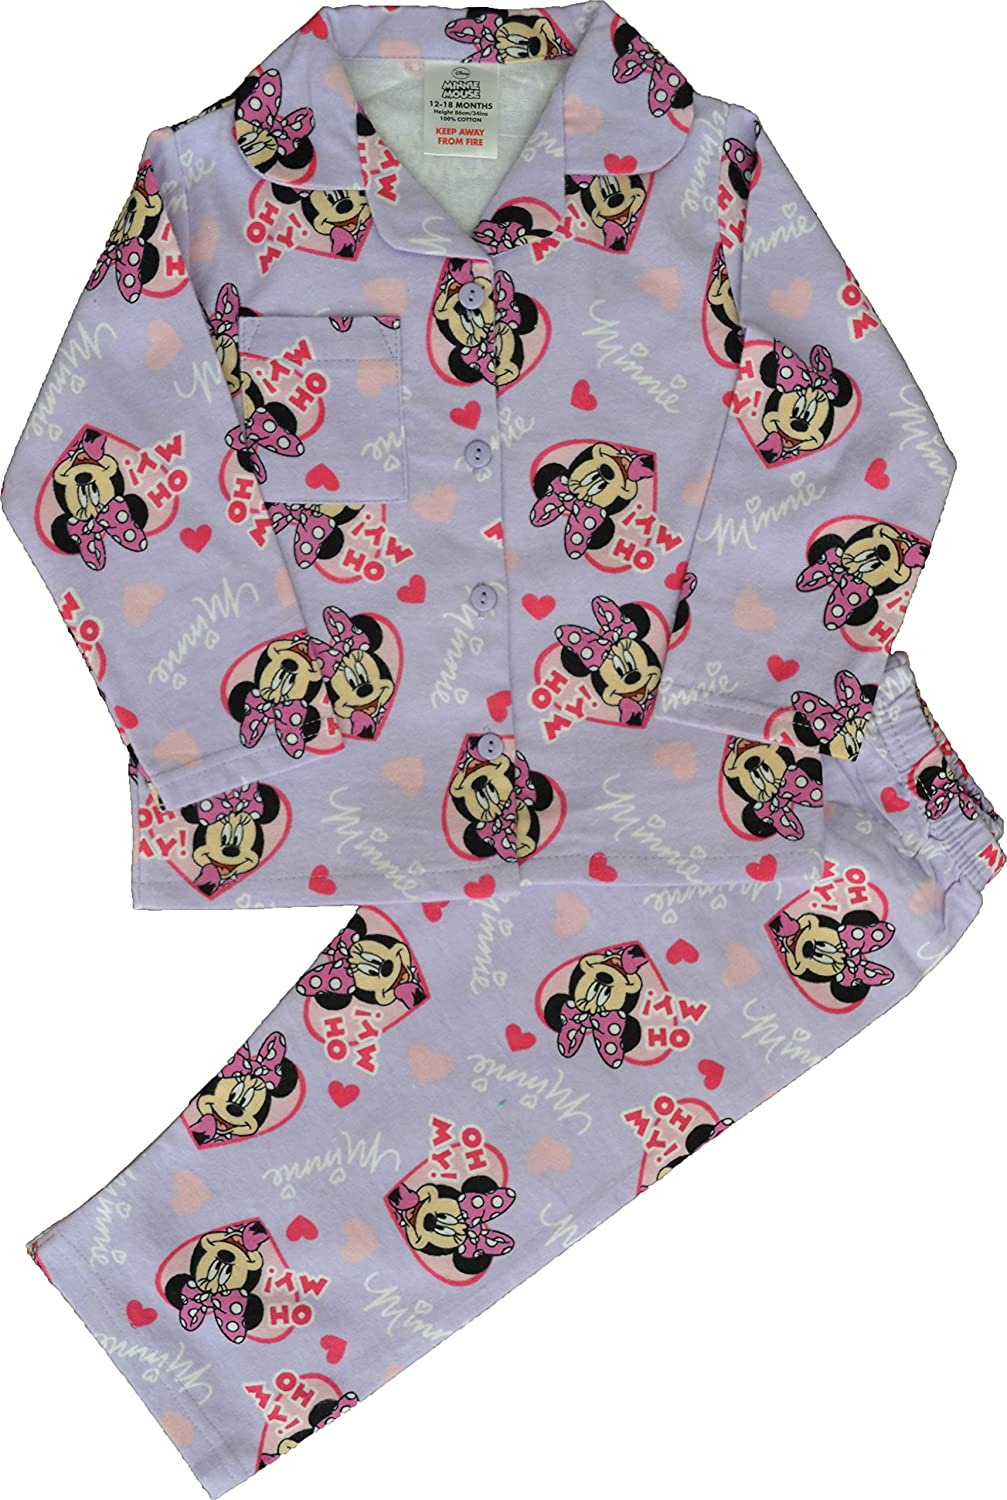 Disney Girls Minnie Mouse Winceyette Brushed Soft Cotton Pyjamas Age 12 Months to 4 Years